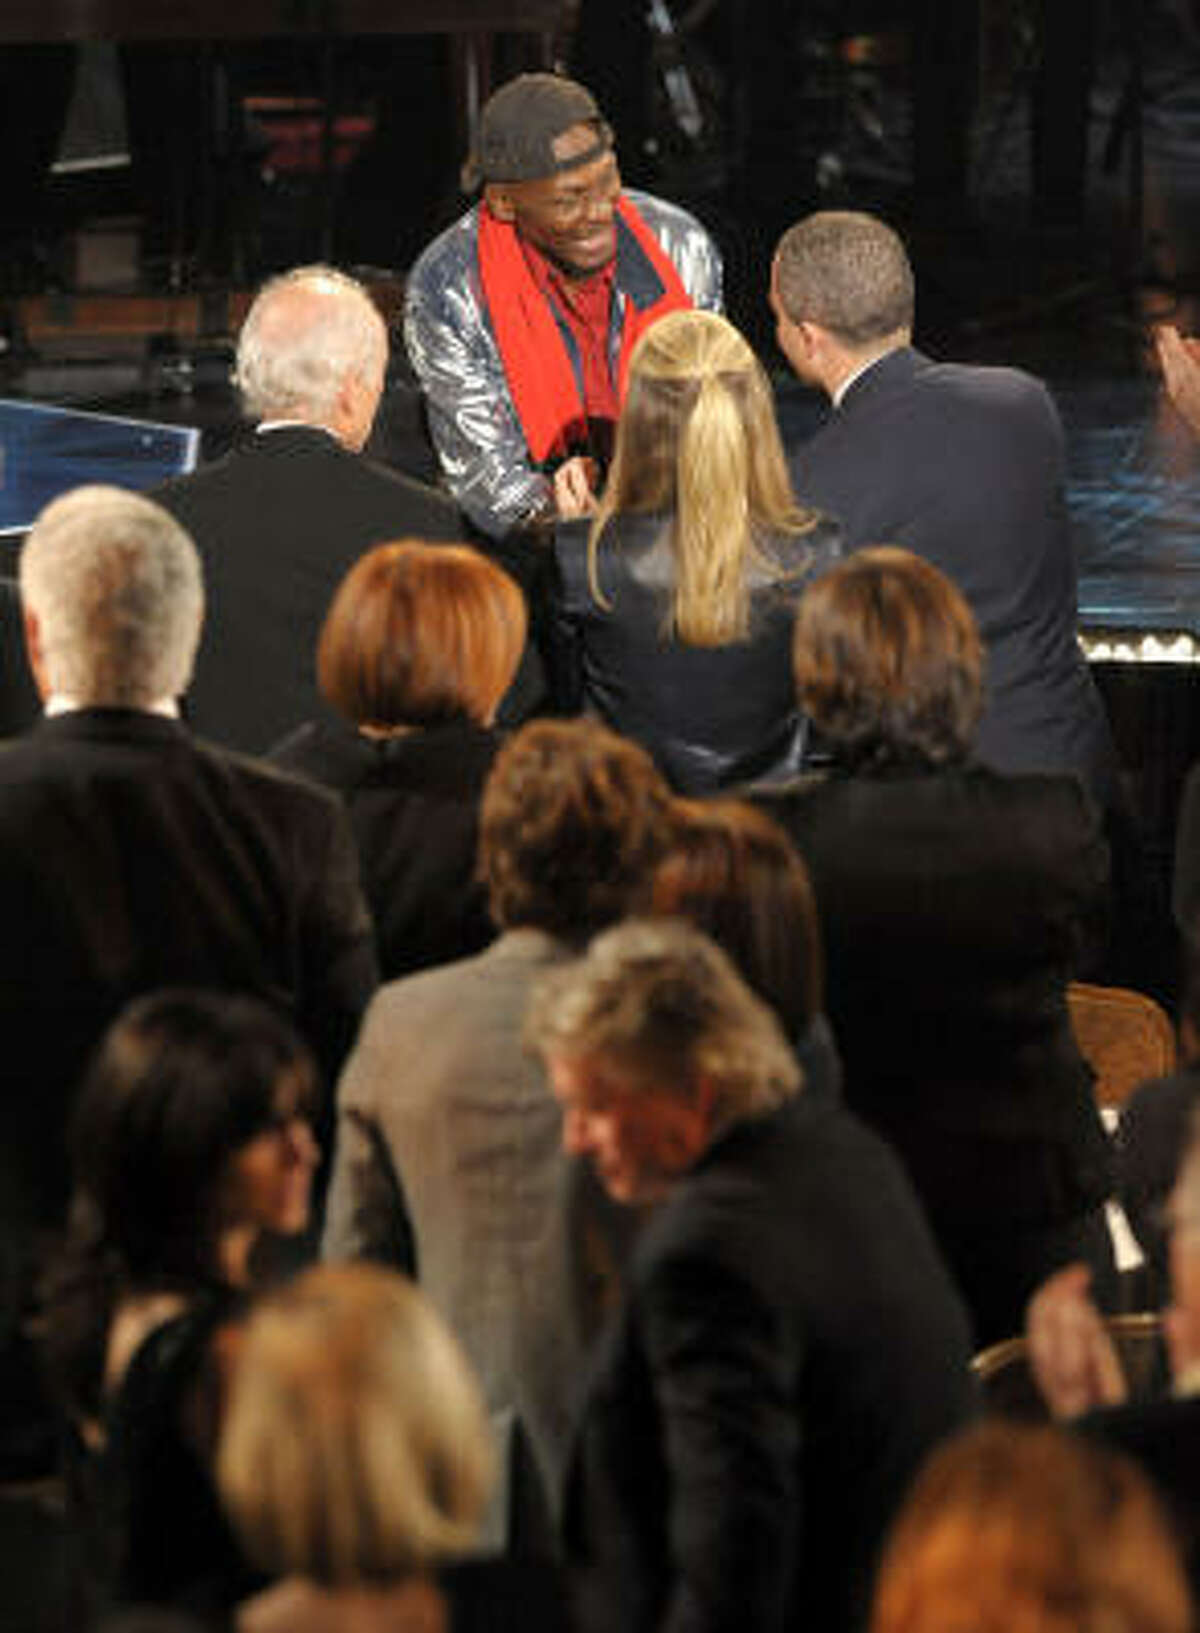 Inductee Jimmy Cliff walks onstage at the 25th Annual Rock And Roll Hall of Fame Induction Ceremony in New York.